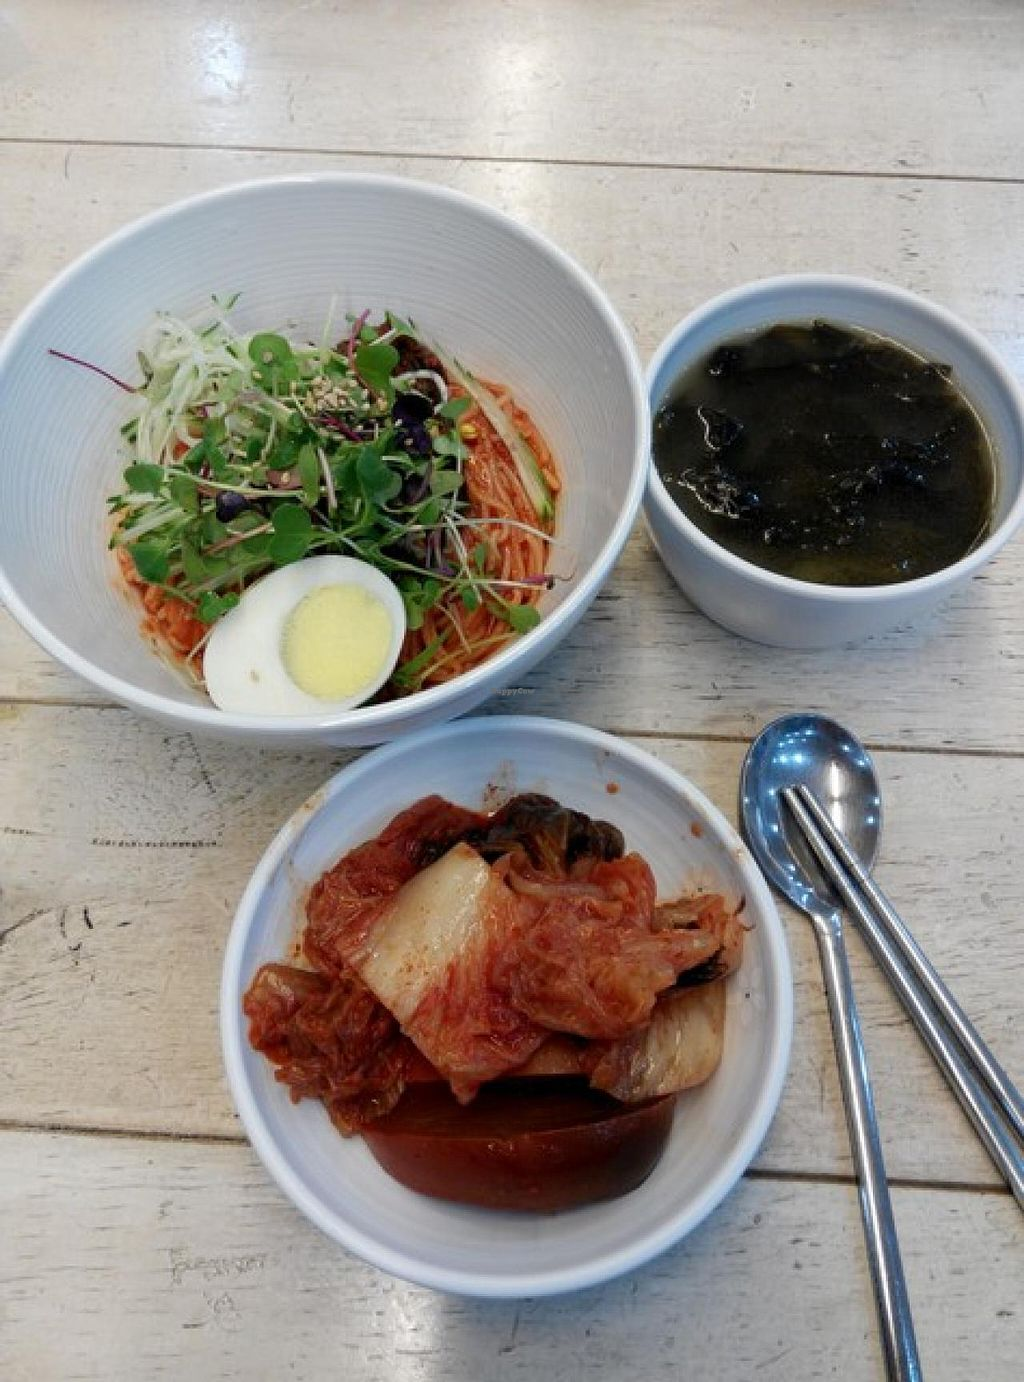 """Photo of Jogyesa Kitchen - 조계사 승소  by <a href=""""/members/profile/LaiNamKhim"""">LaiNamKhim</a> <br/>Bibim noodles, with sides of kimchi and seaweed soup <br/> October 3, 2014  - <a href='/contact/abuse/image/51859/82028'>Report</a>"""